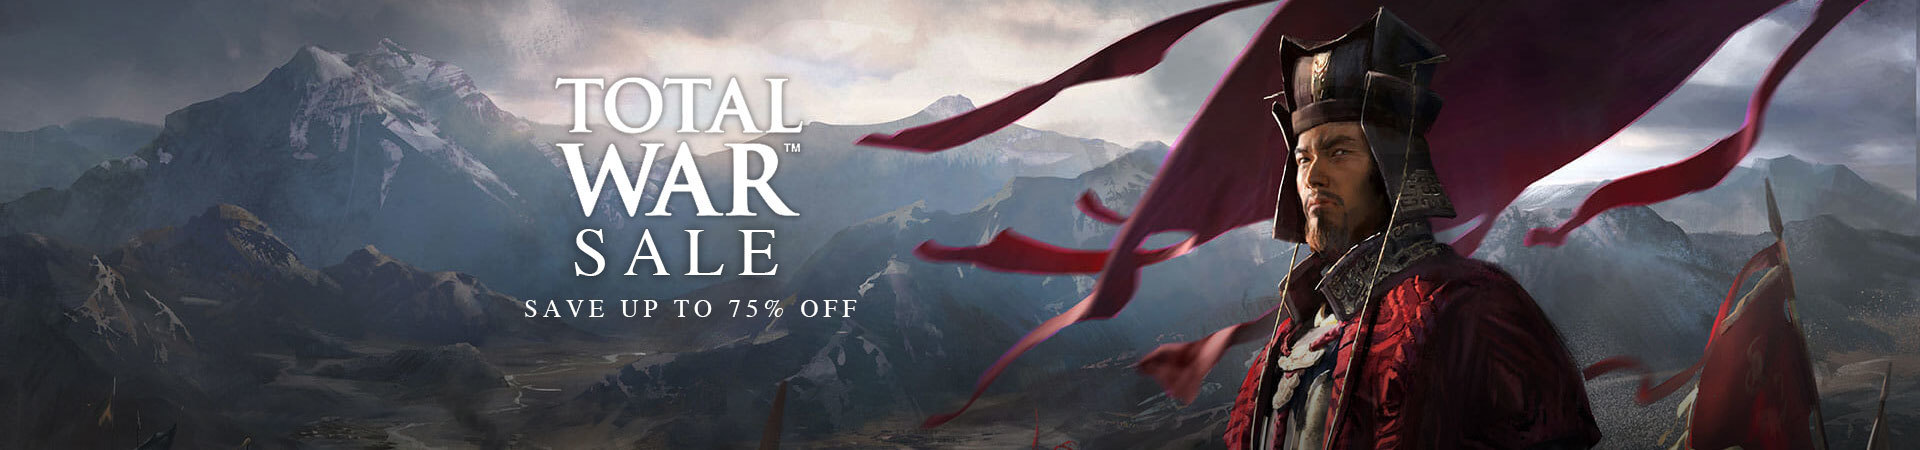 Total War Sale